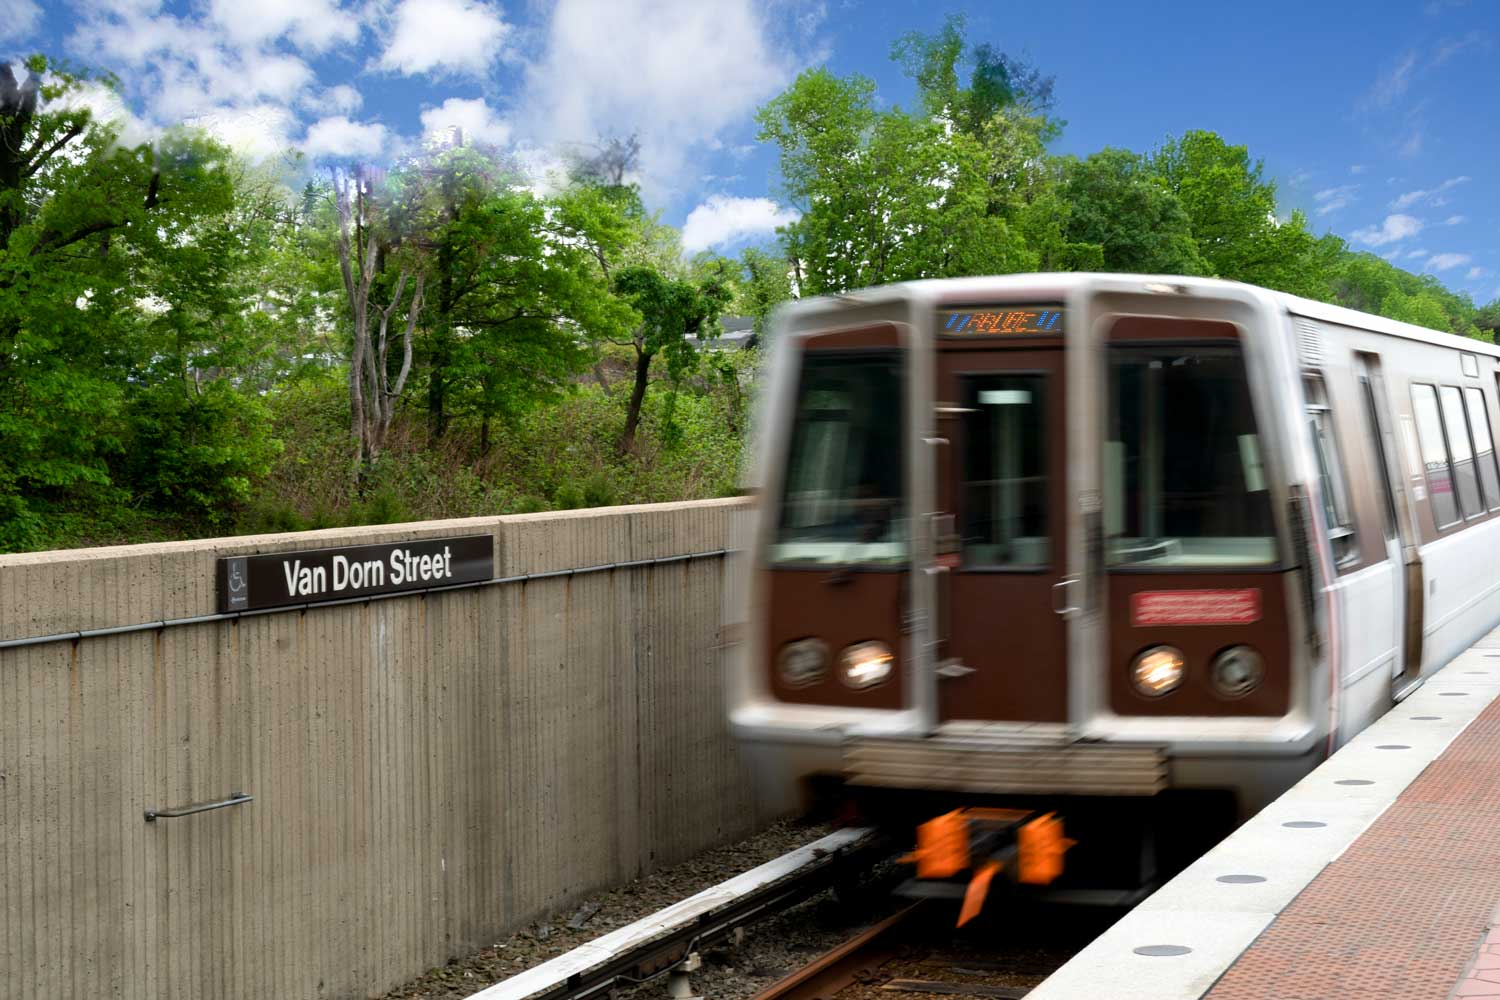 Van Dorn Street Metro station is 10 minutes from Woodmont Park Apartments